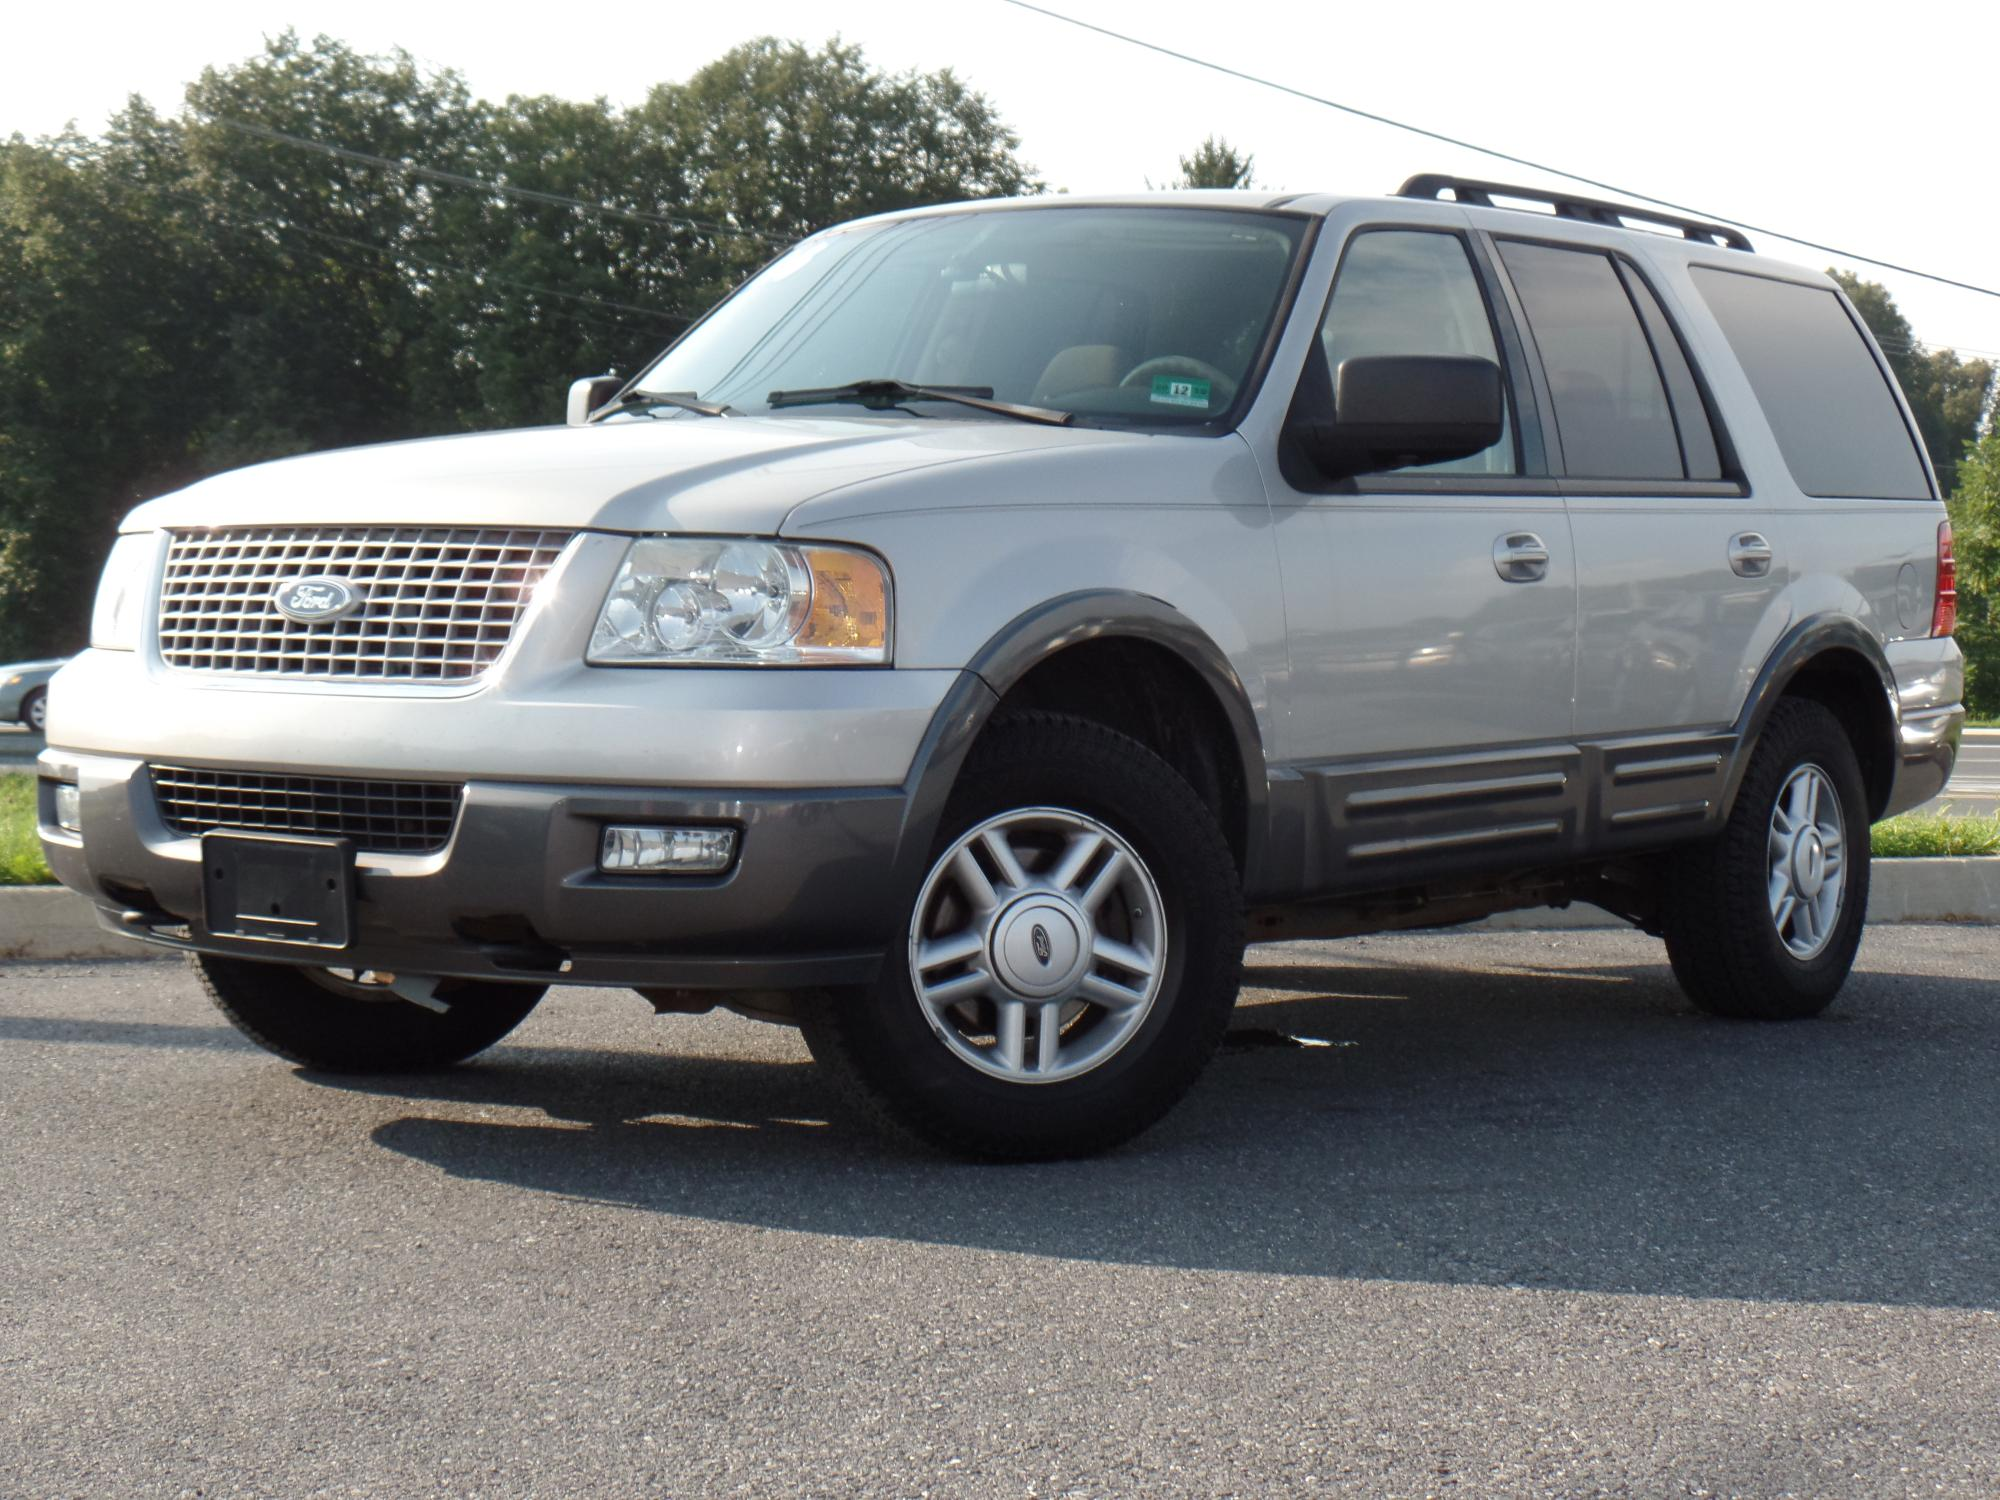 8-6-2018_2006_Ford_Expedition_A37990__1_.JPG